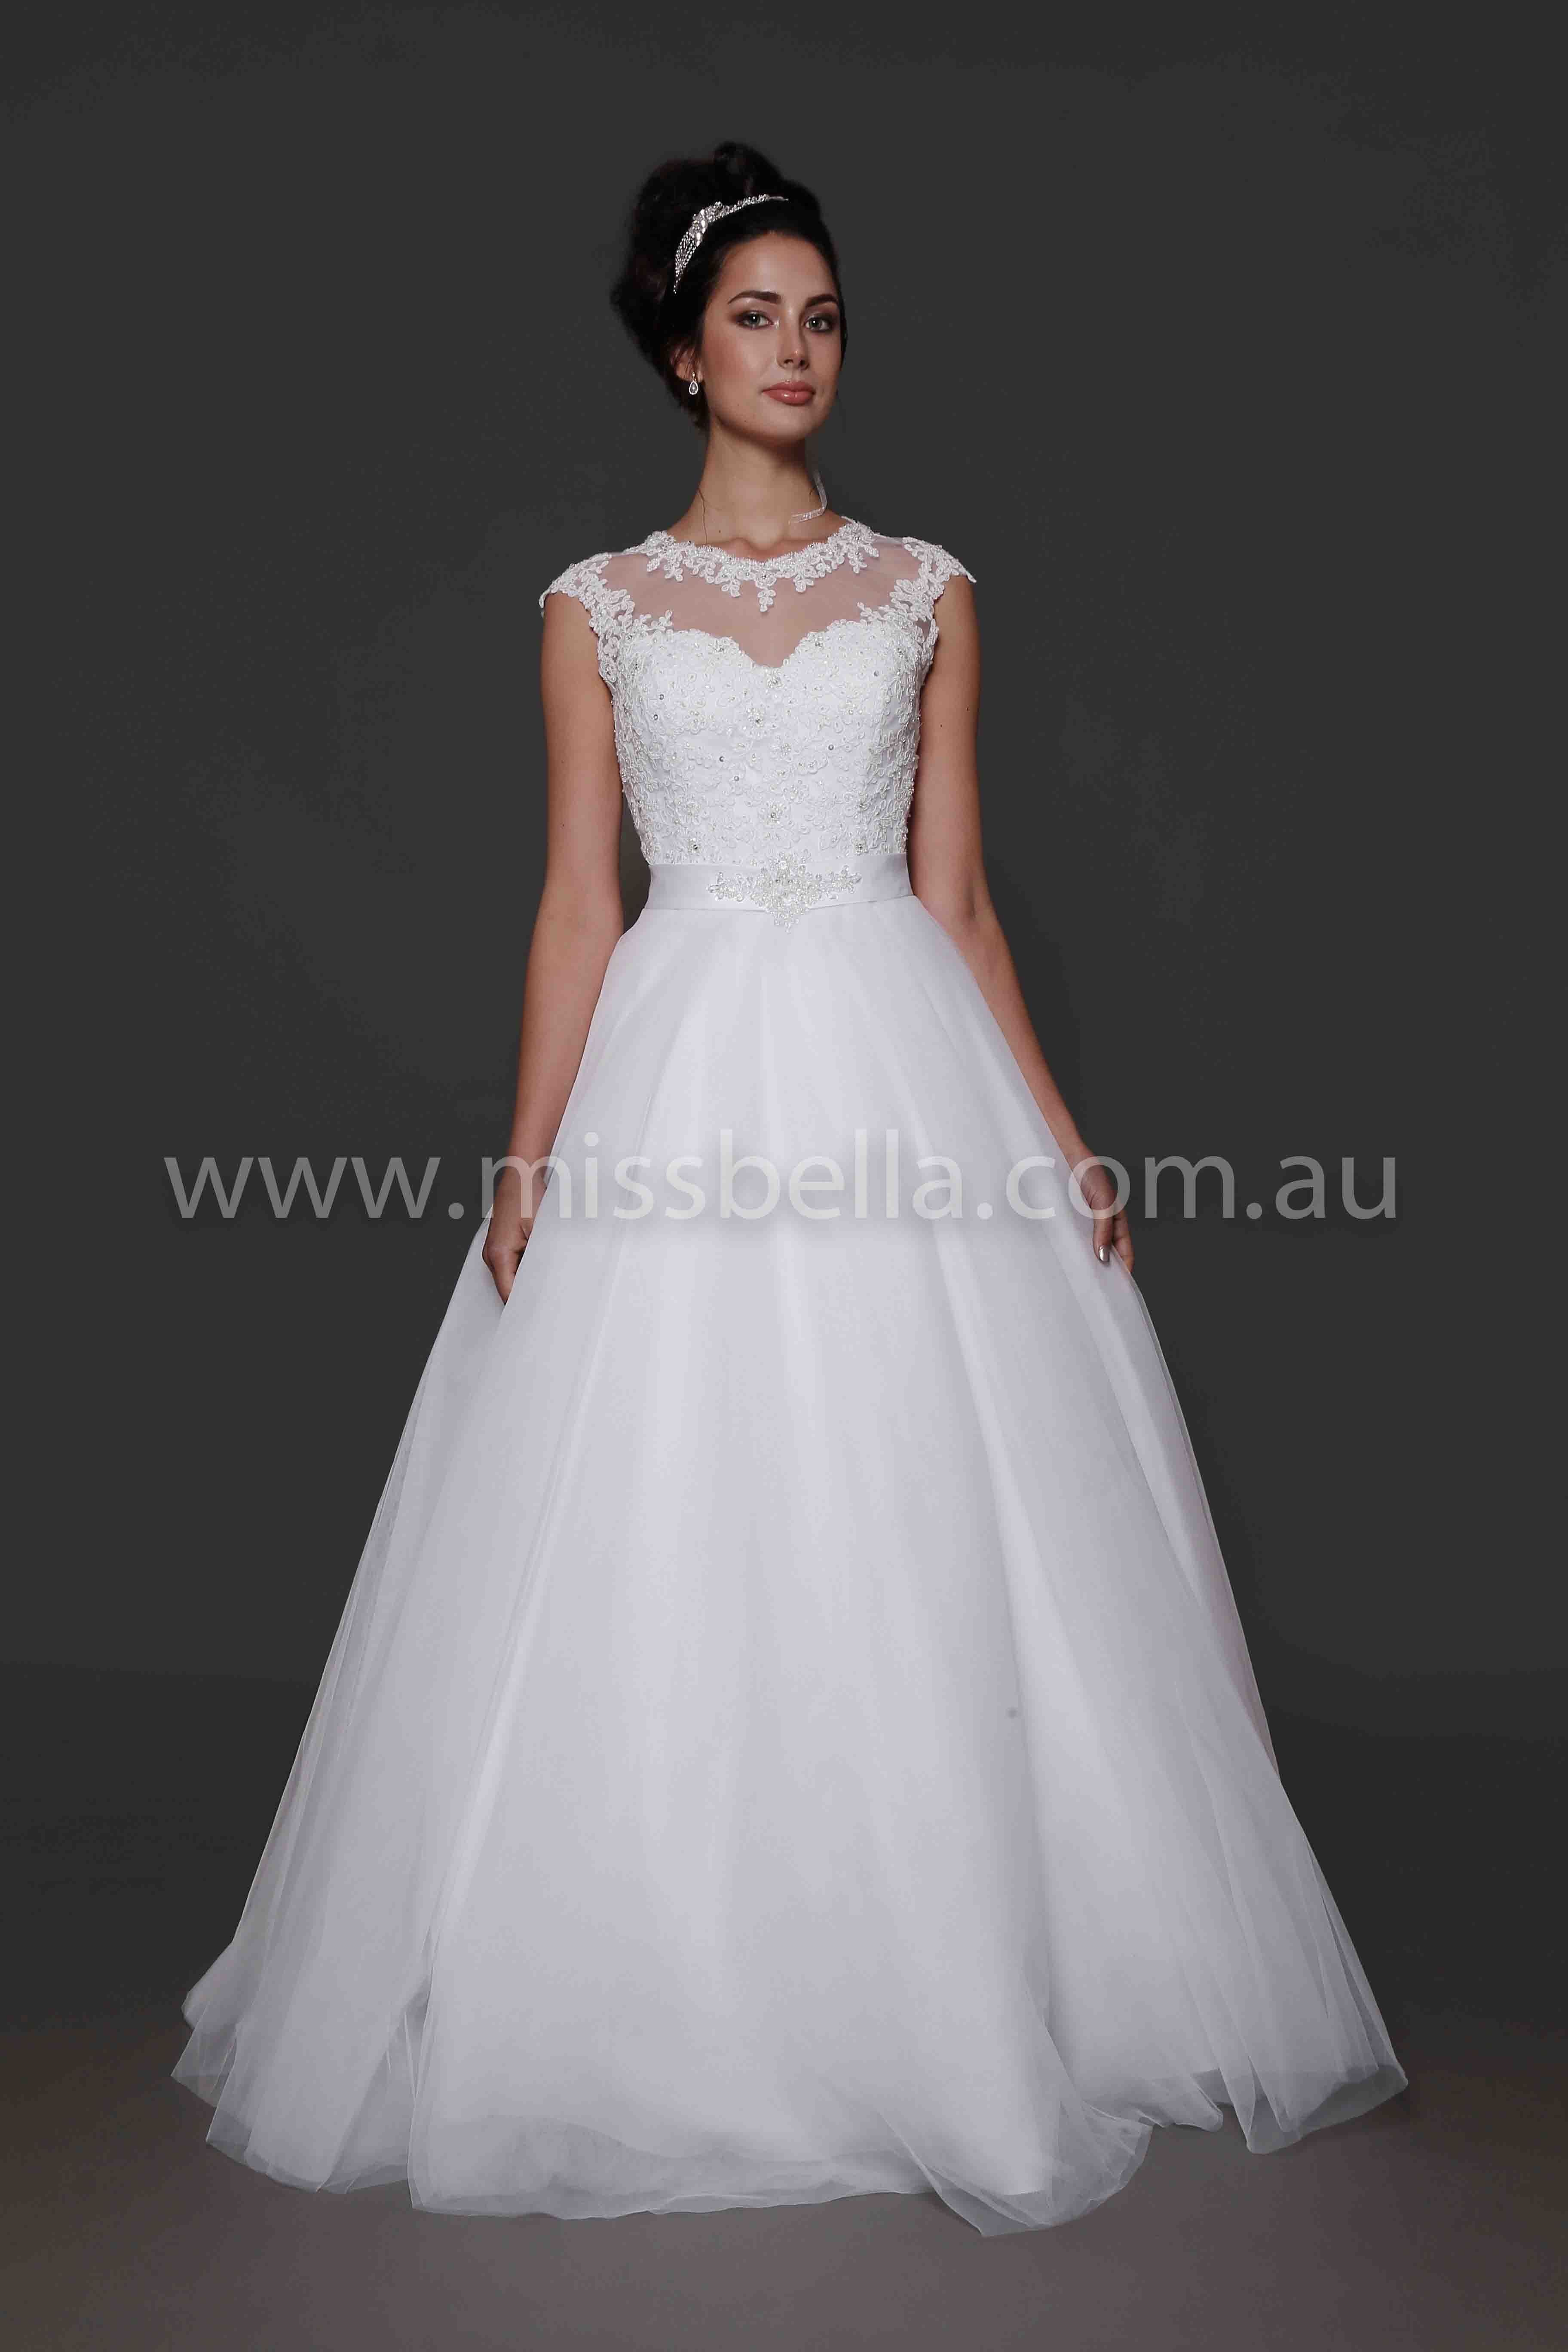 A new deb dress design miss bella bridal melbourne wedding a new deb dress design miss bella bridal melbourne ombrellifo Gallery